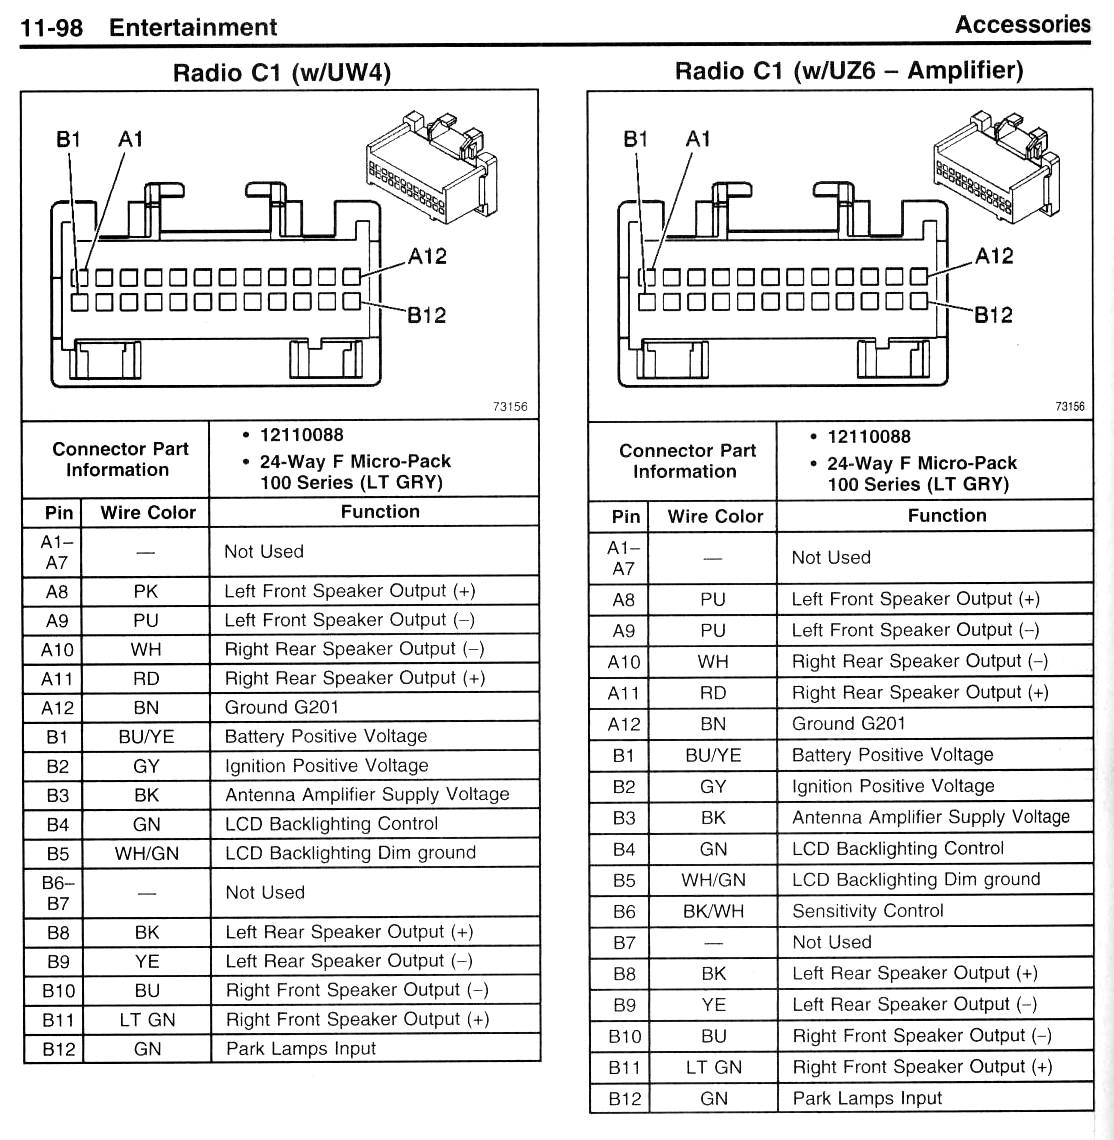 Pontiac Stereo Wiring Diagram Books Of Wiring Diagram \u2022 2002 Grand AM  Wiring Diagram Stereo Wiring Diagram Pontiac G5